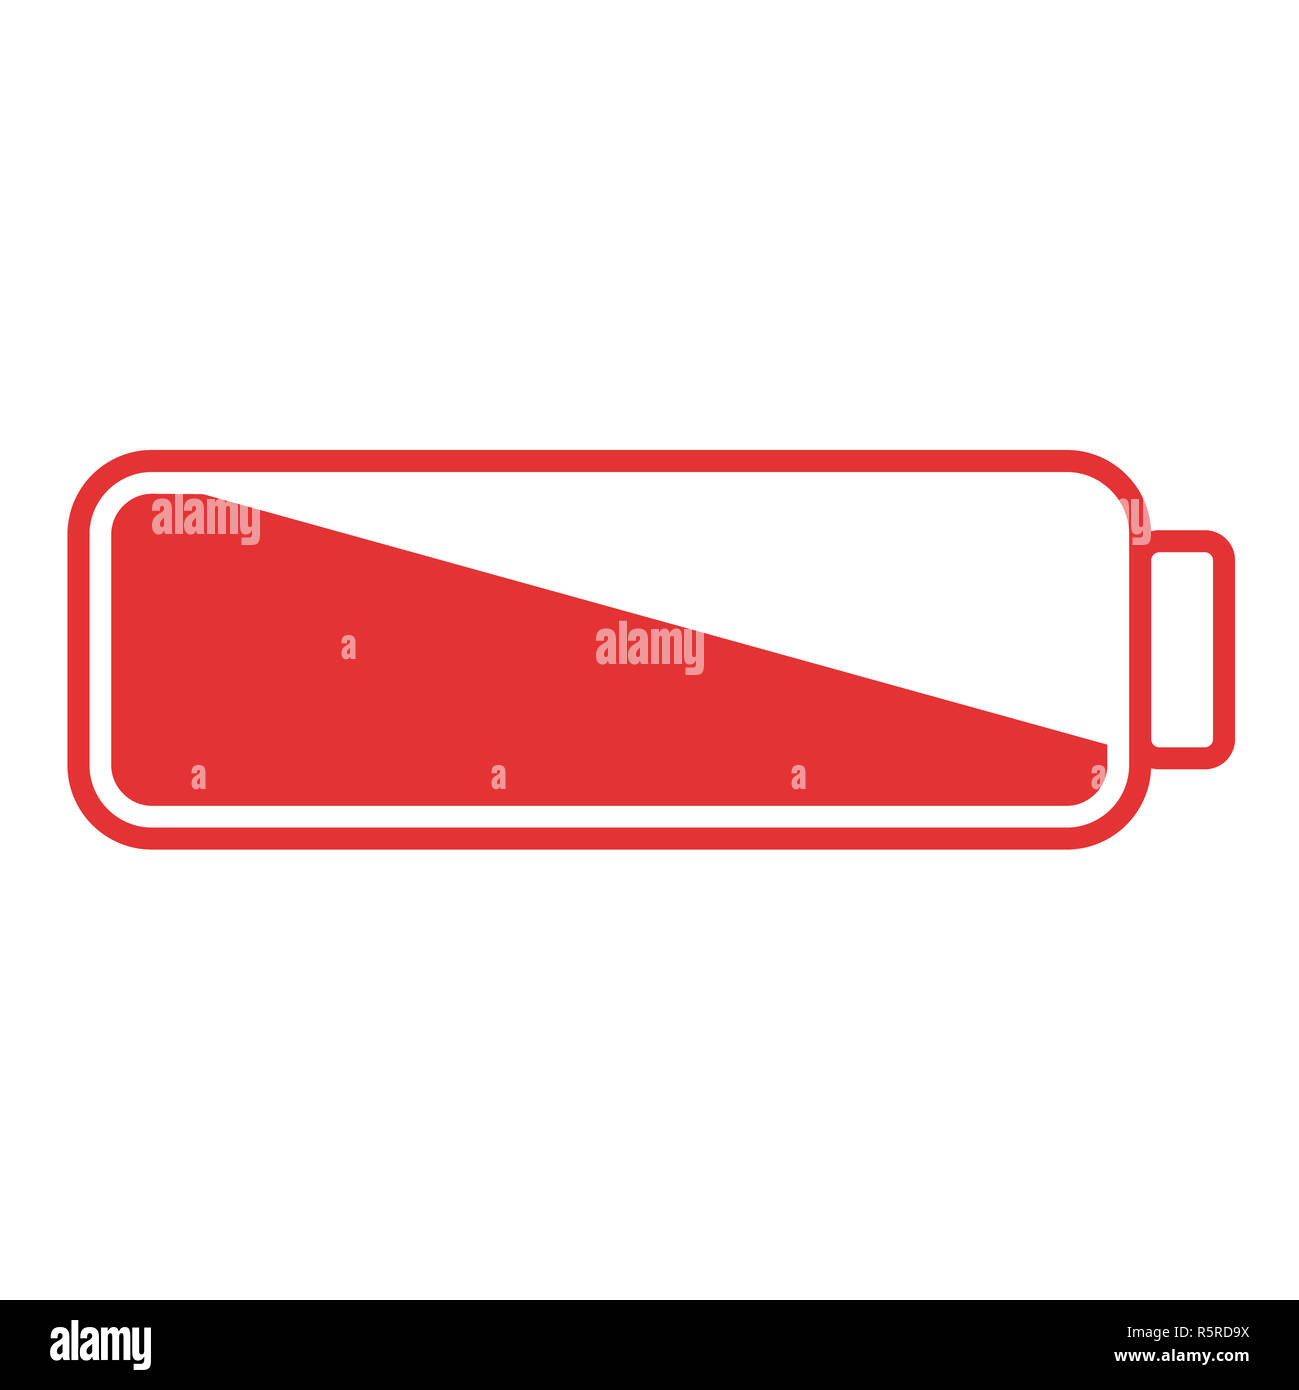 smartphone or cell phone low battery icon low energy symbol flat vector illustration stock photo alamy https www alamy com smartphone or cell phone low battery icon low energy symbol flat vector illustration image227323430 html